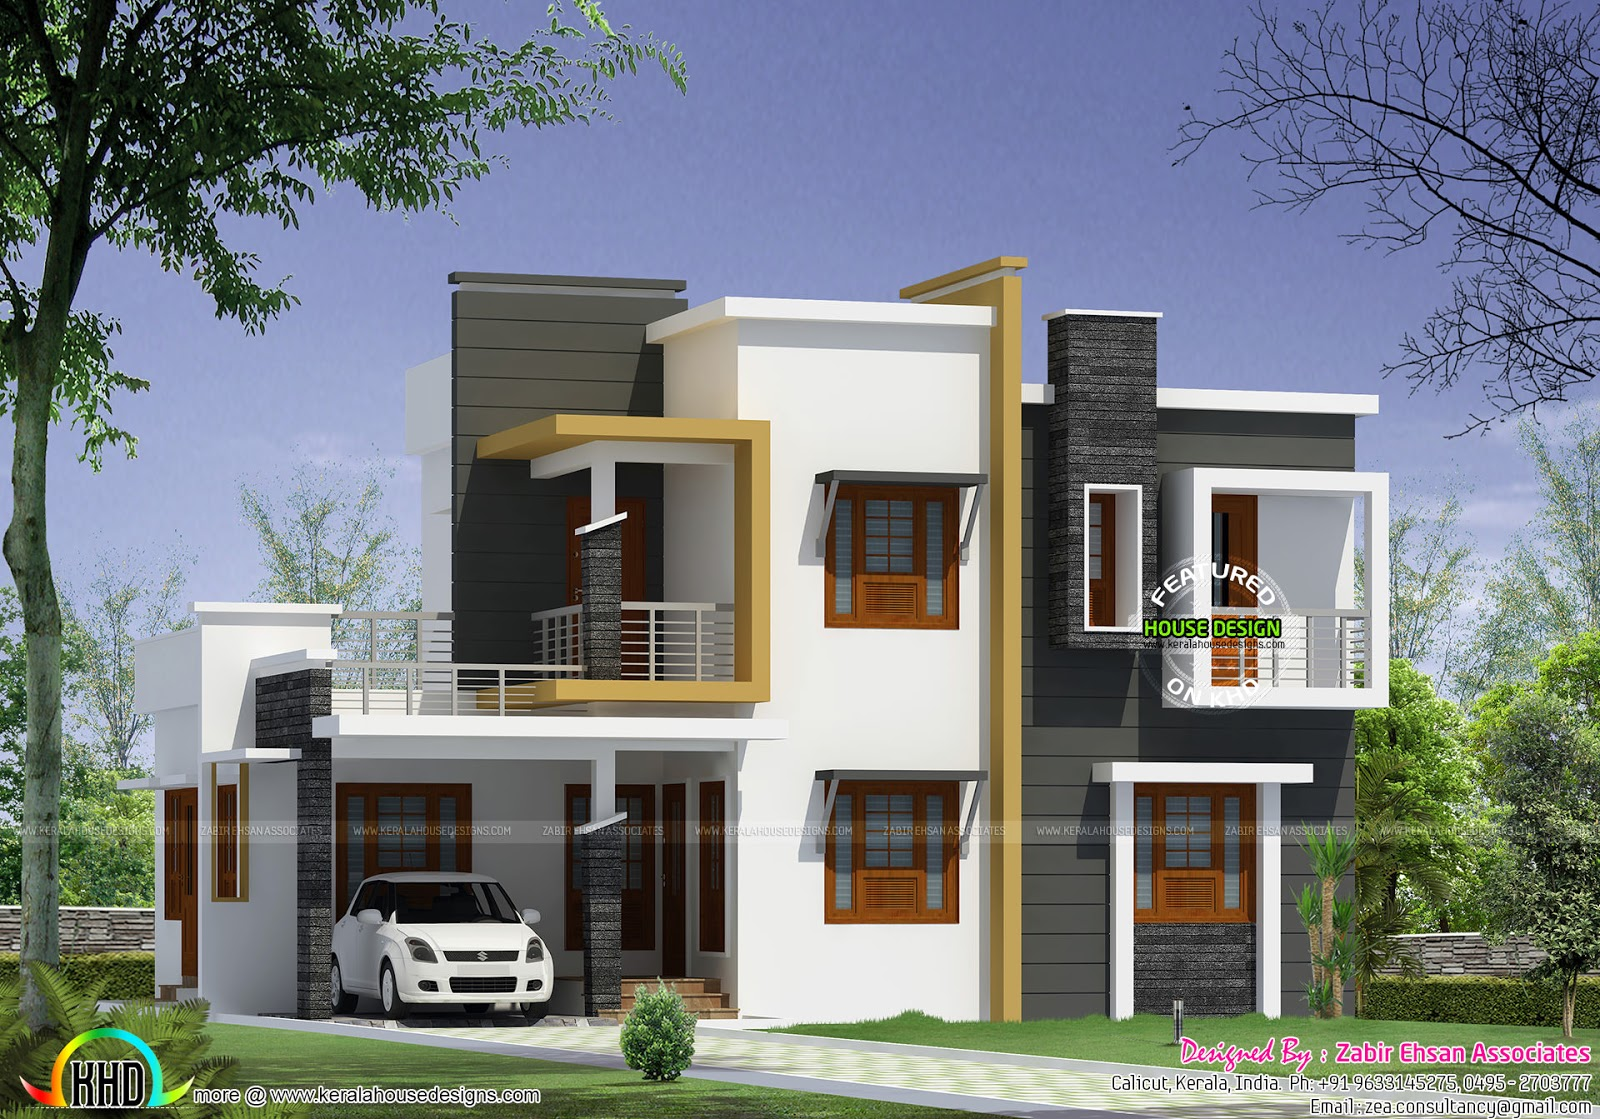 Box type modern house plan kerala home design and floor for Modern home design plans